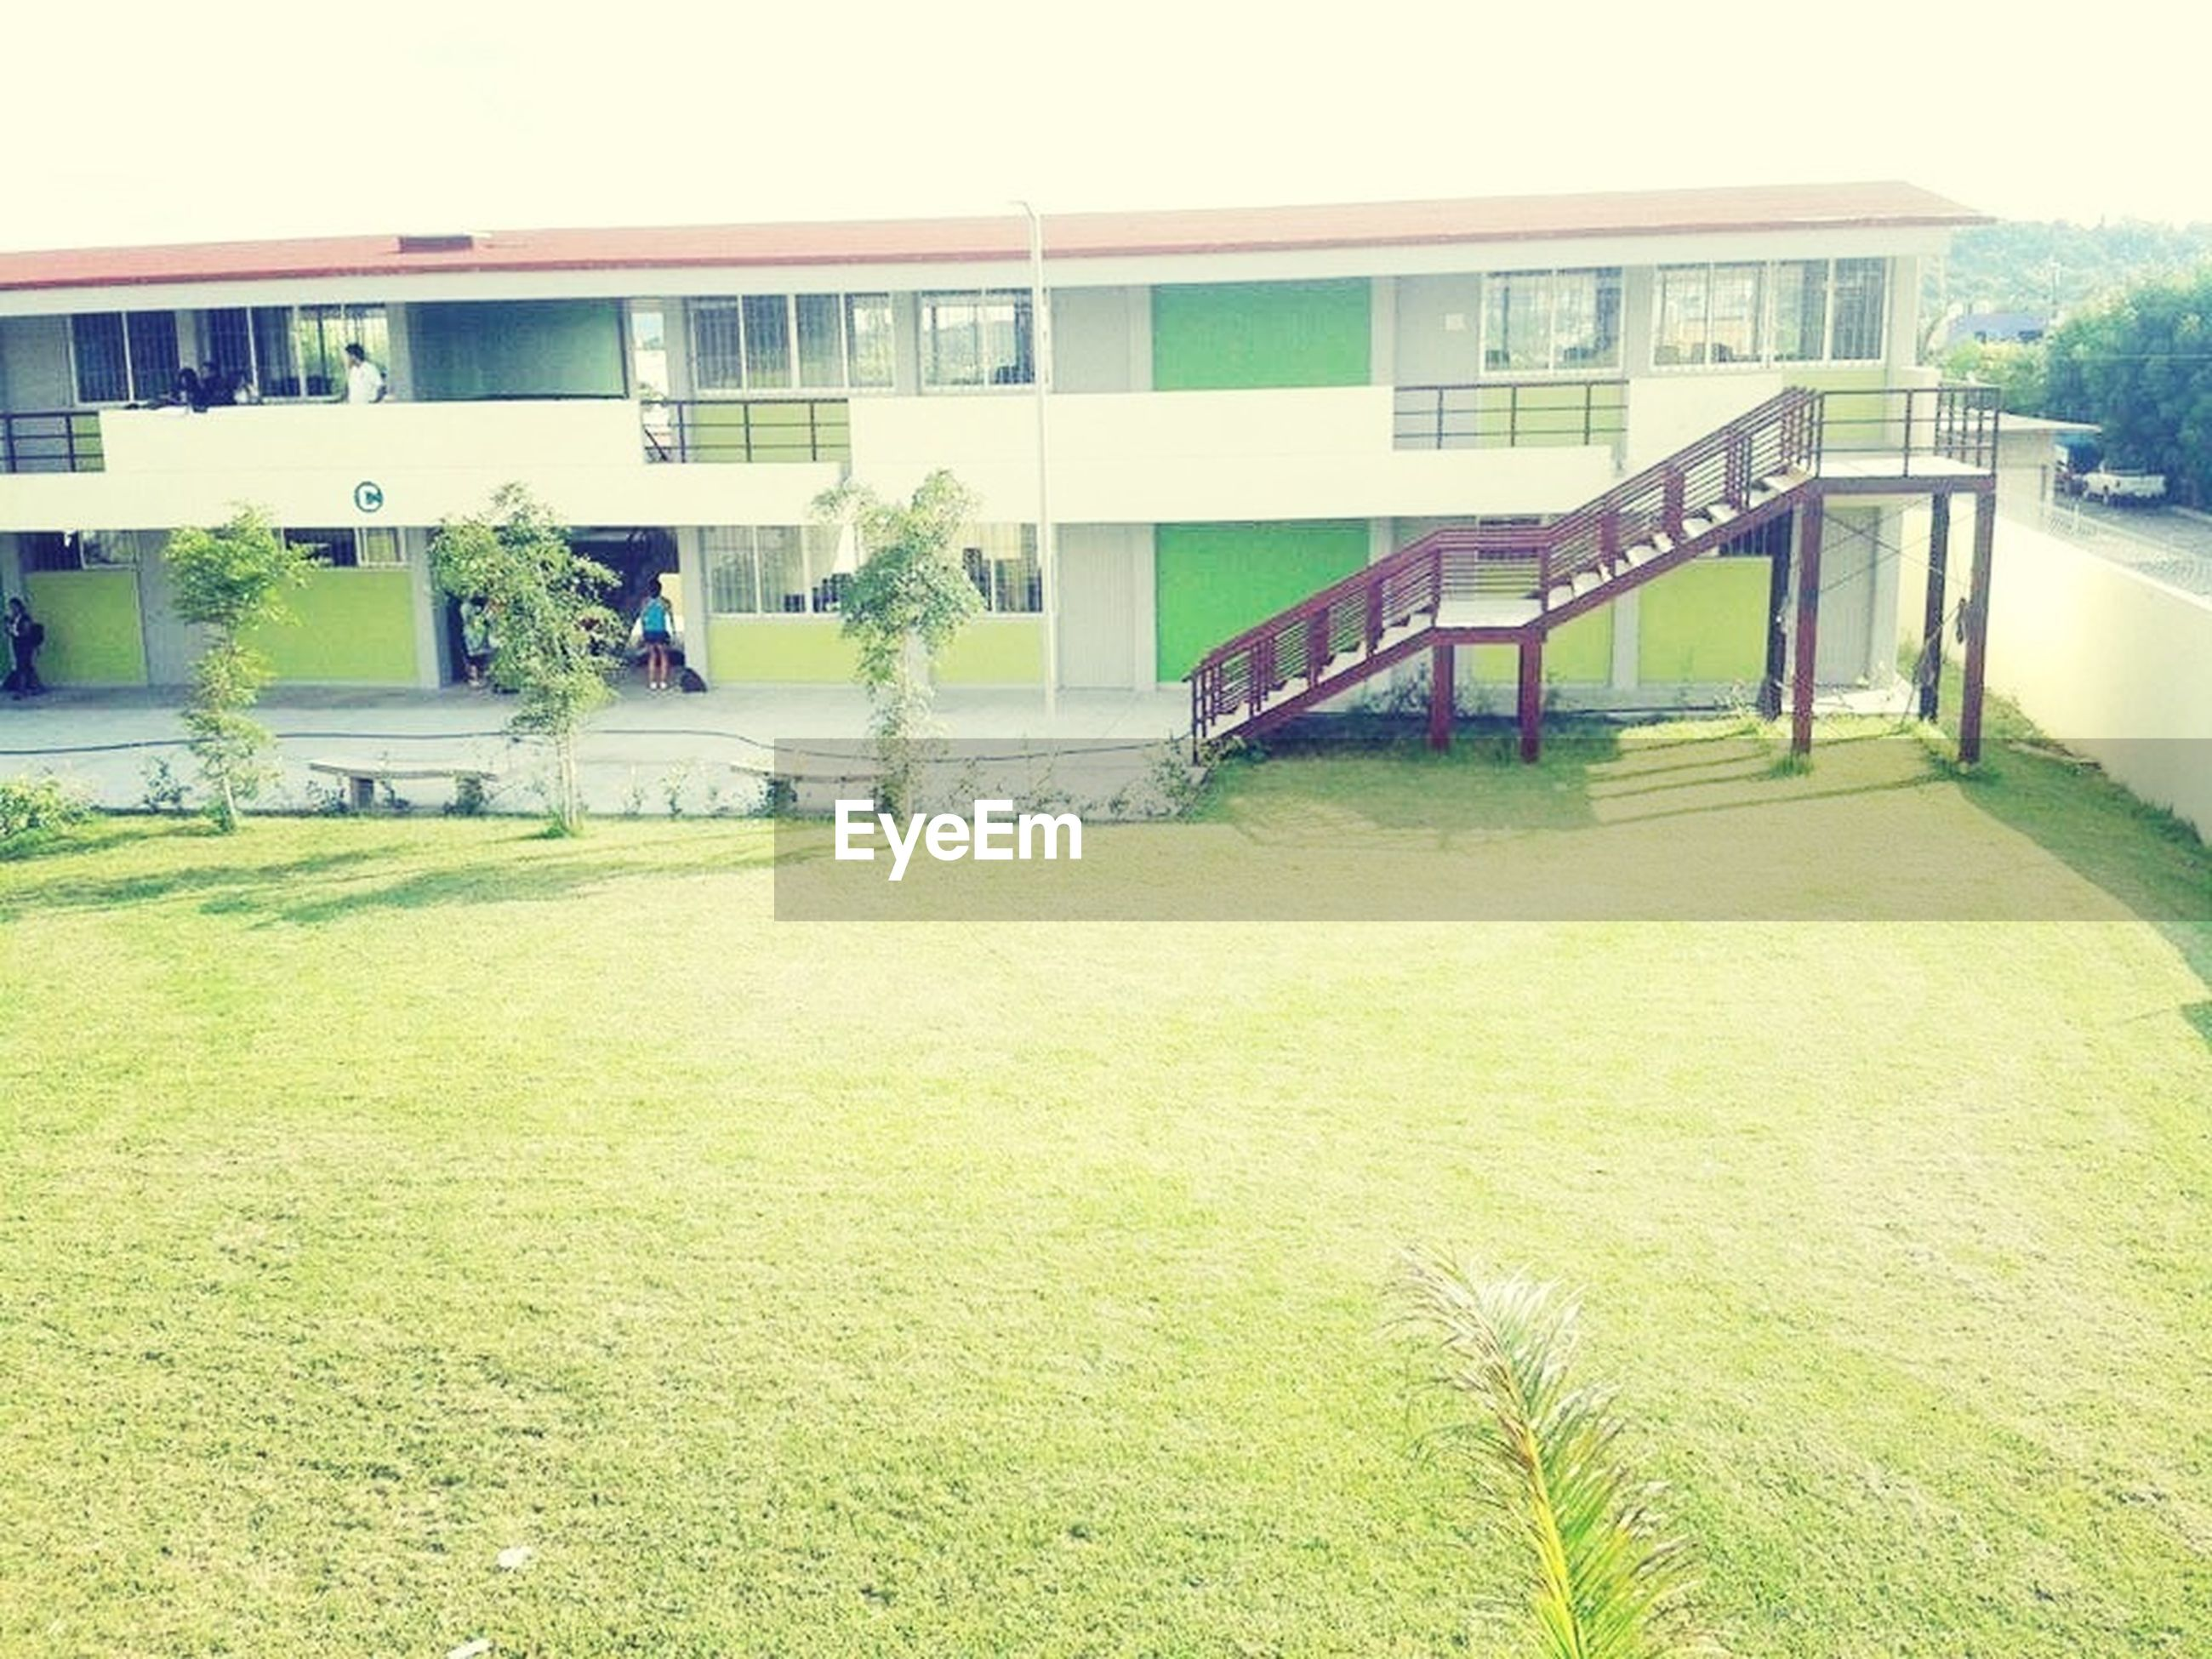 architecture, built structure, grass, building exterior, green color, house, day, growth, lawn, plant, tree, grassy, field, outdoors, no people, sky, green, sunlight, nature, building